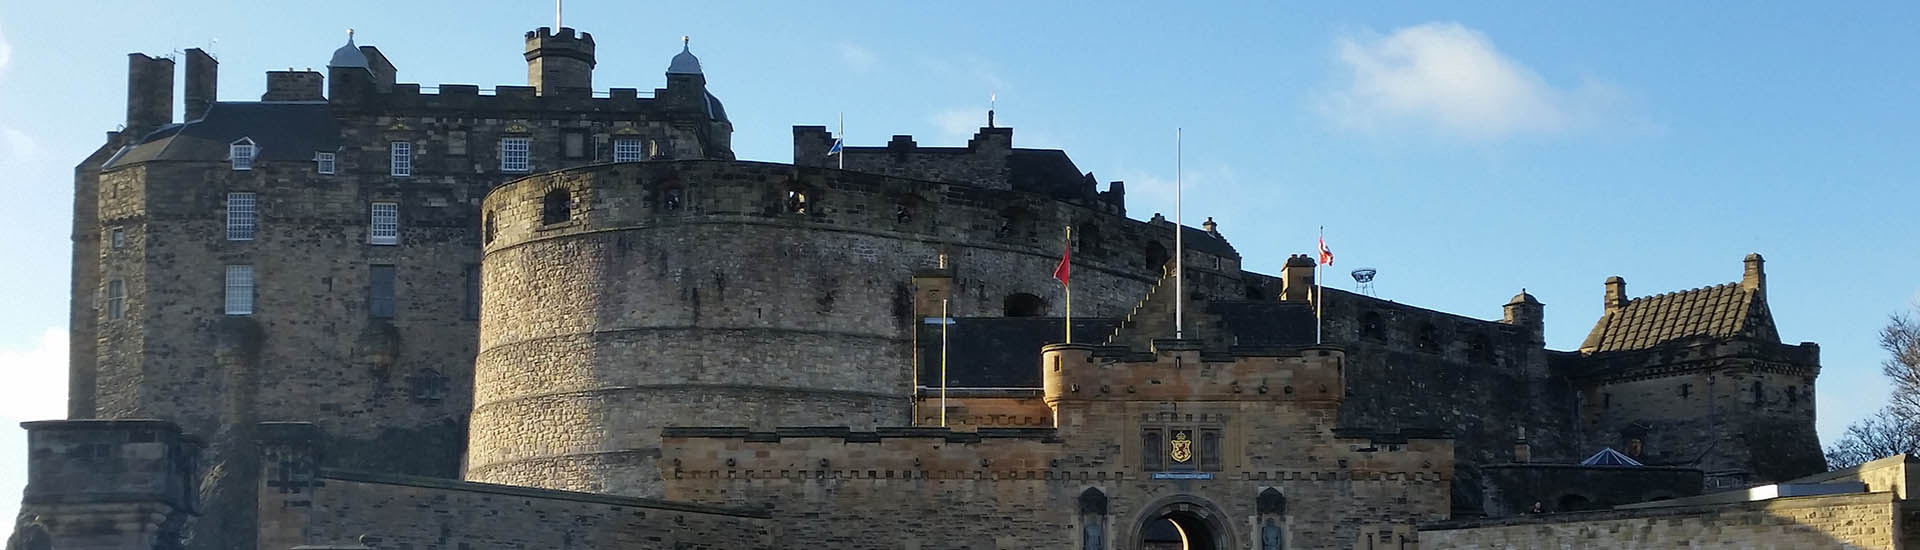 Edinburgh Castle - Christian Heritage Centre